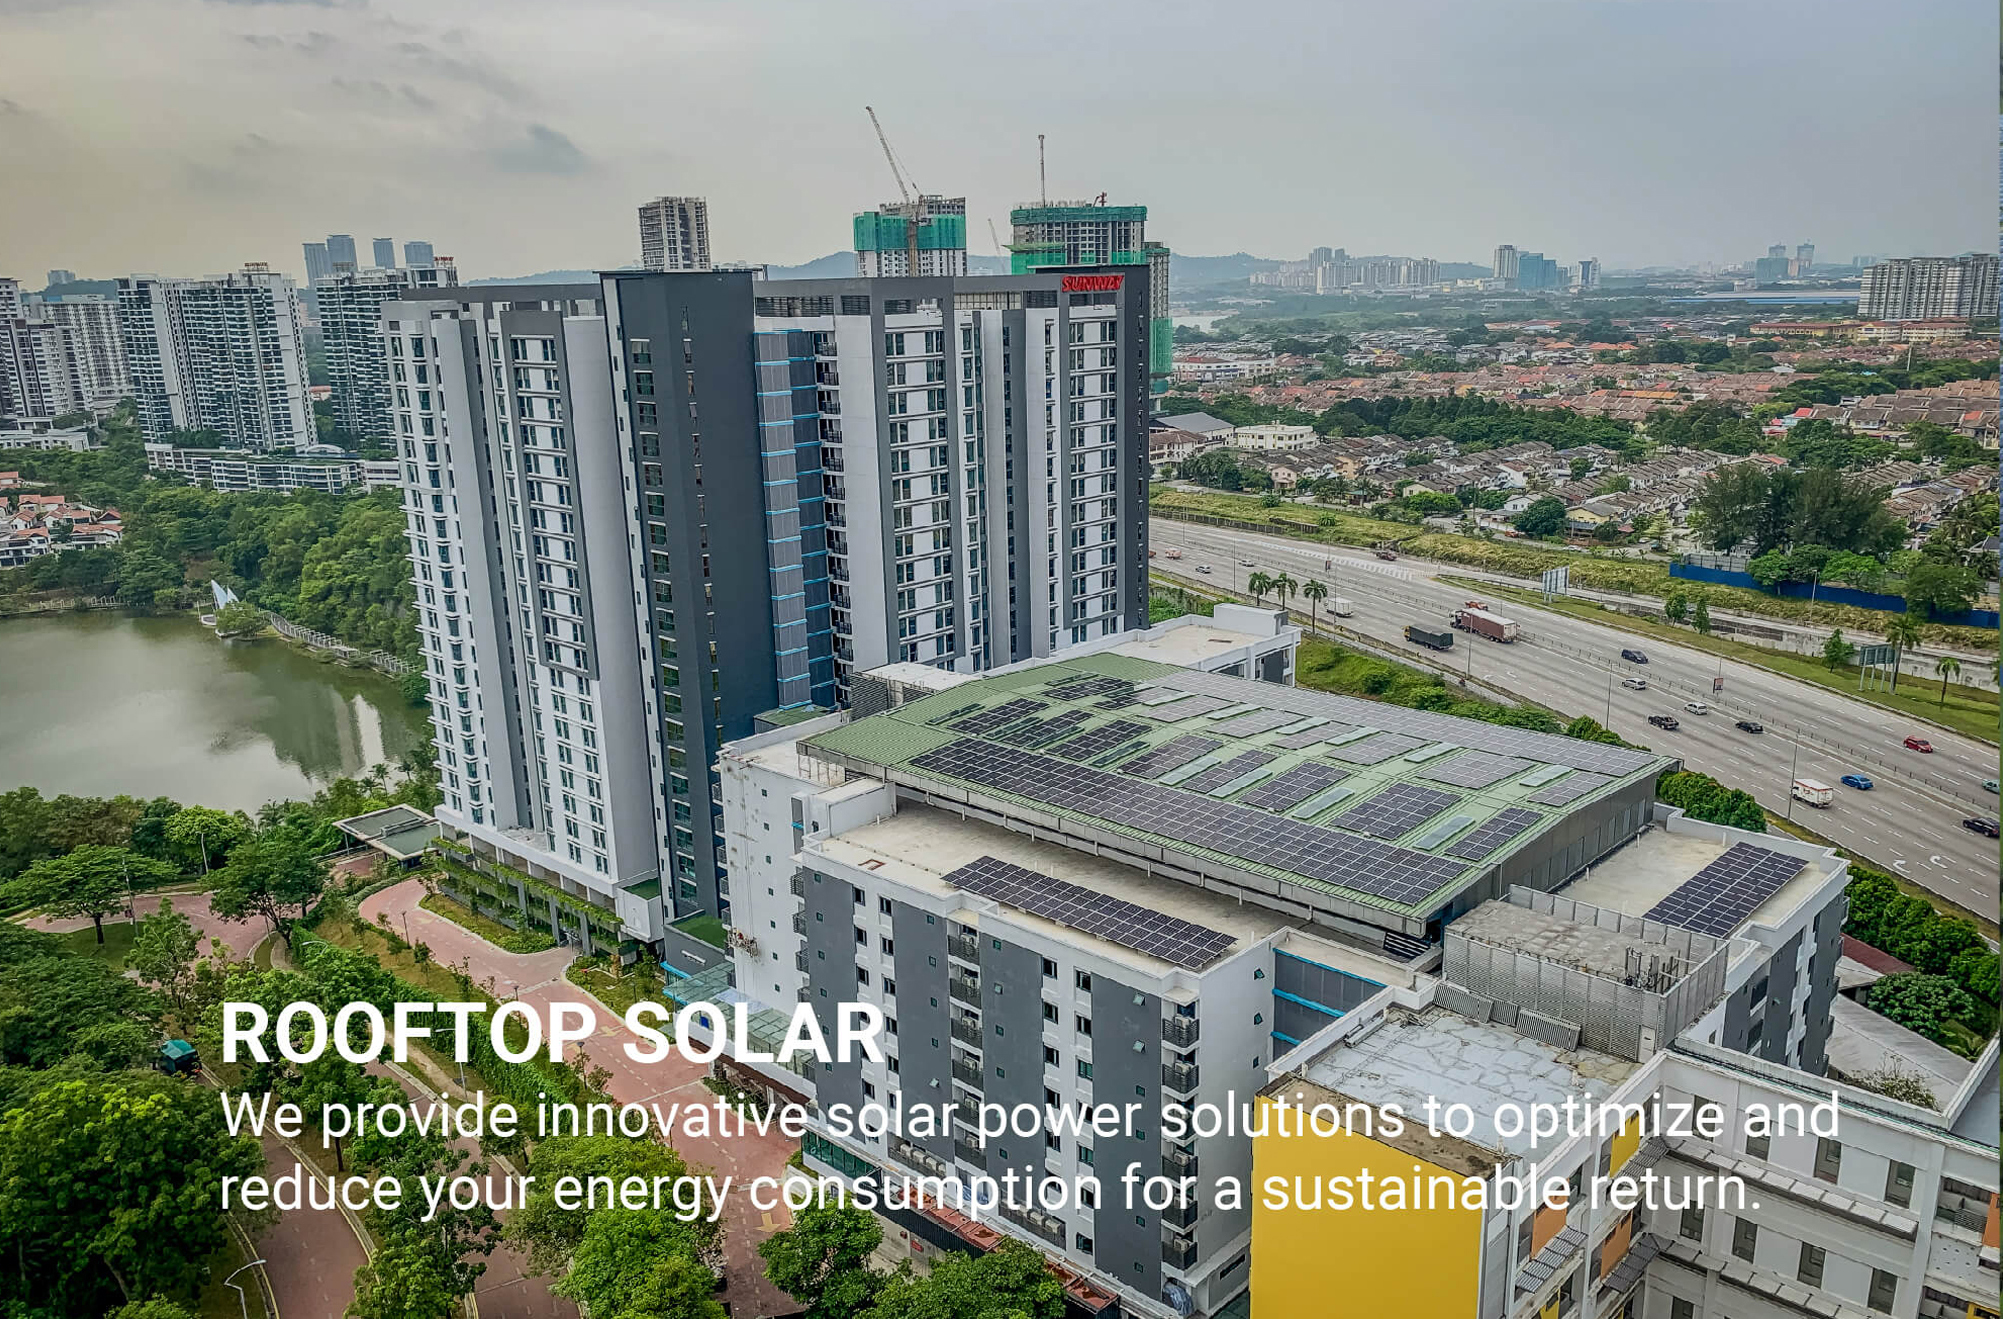 We provide innovative solar power solutions to optimize and reduce your energy consumption for a sustainable return.